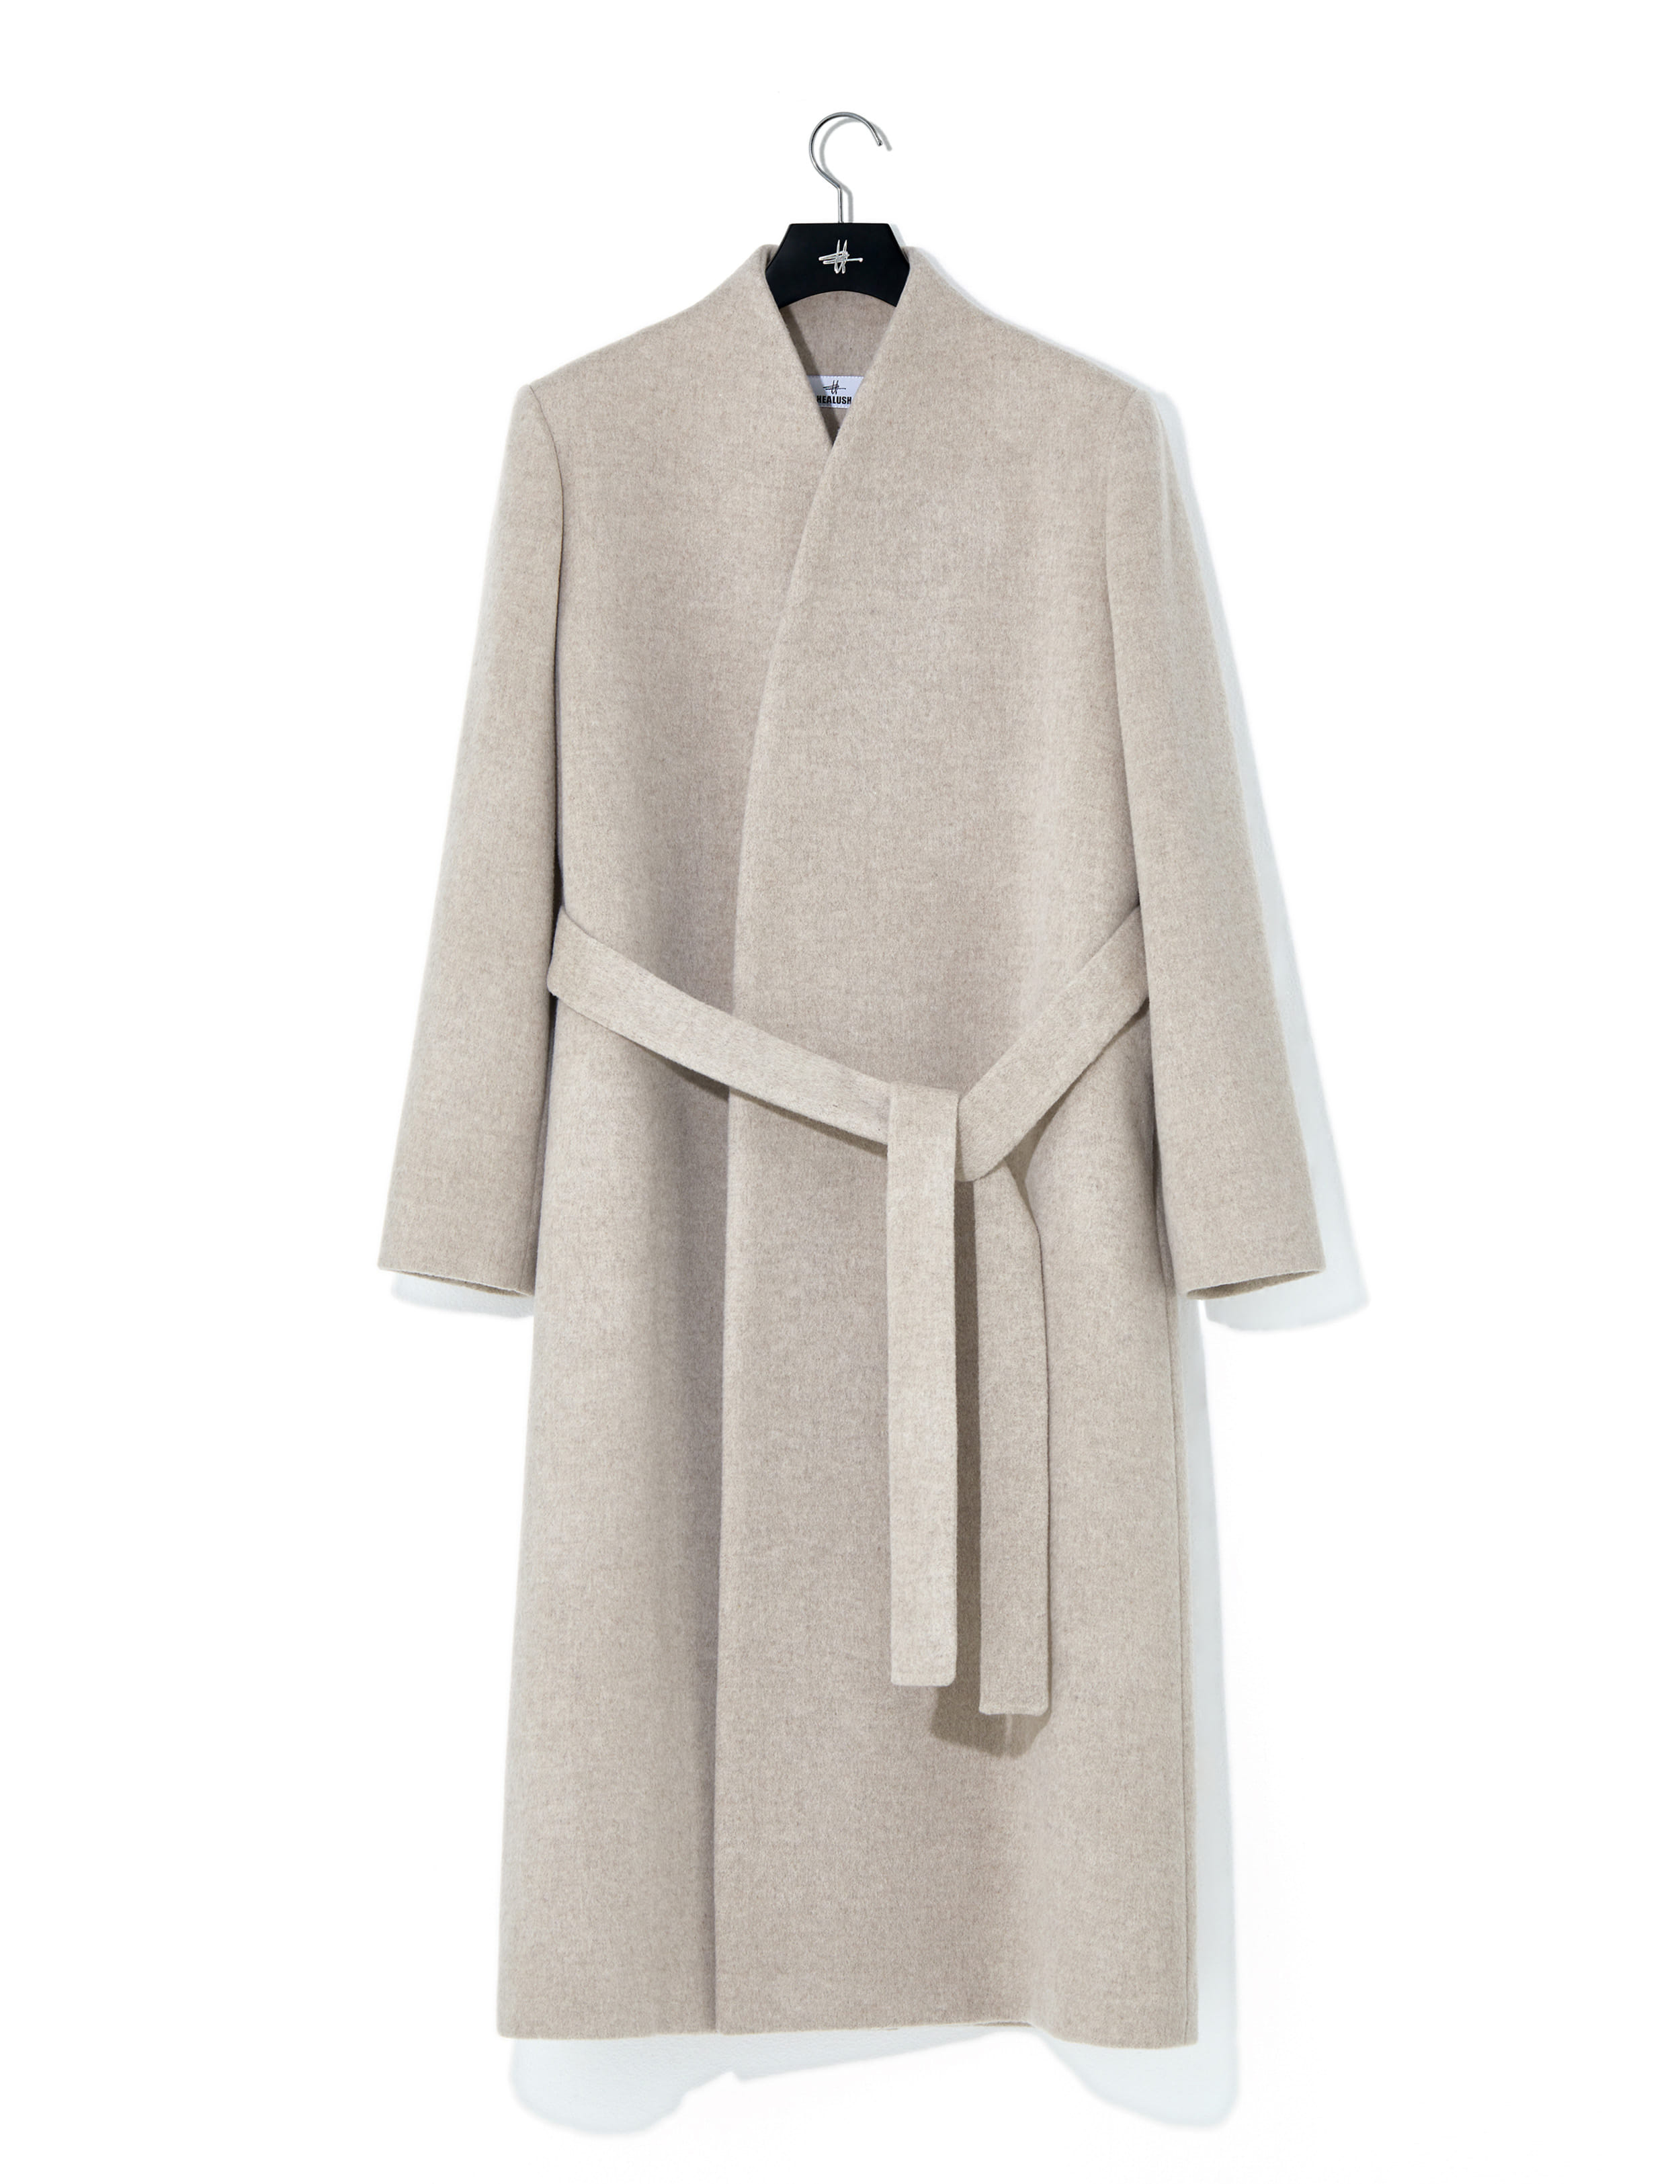 Signature overcoat oatmeal